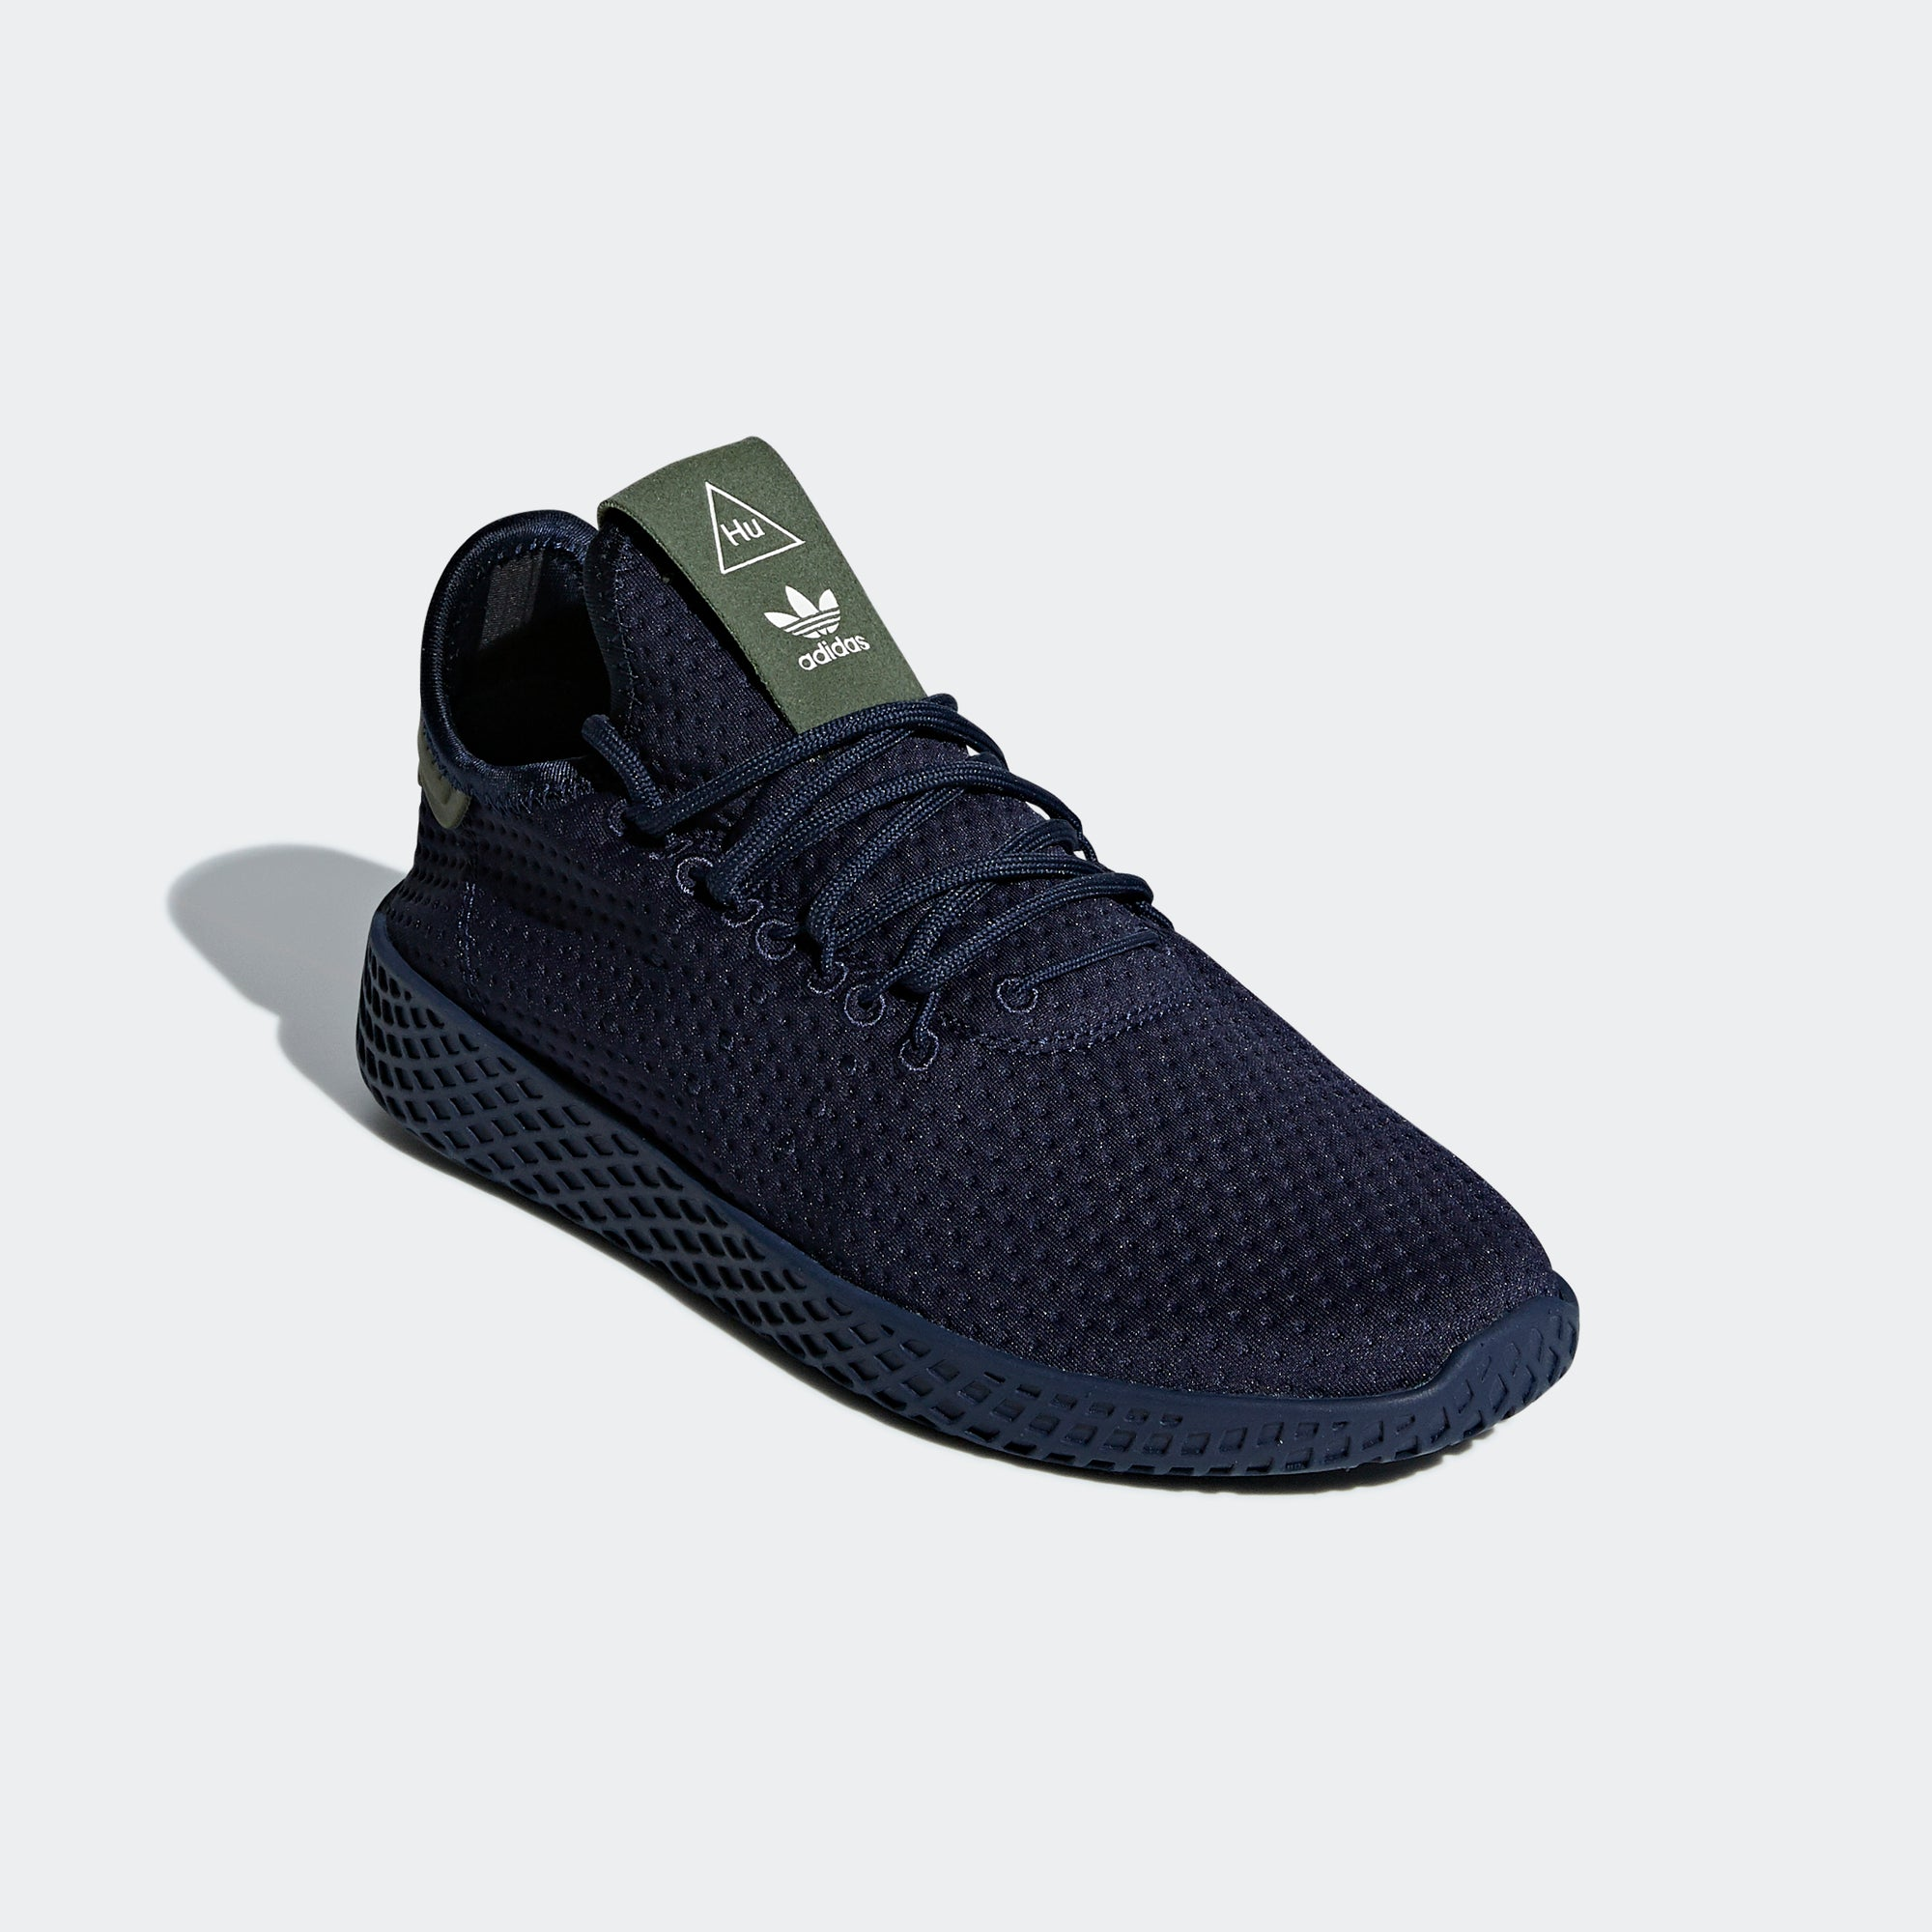 Adidas Pharrell Williams Tennis Hu Shoes Kids minimalist